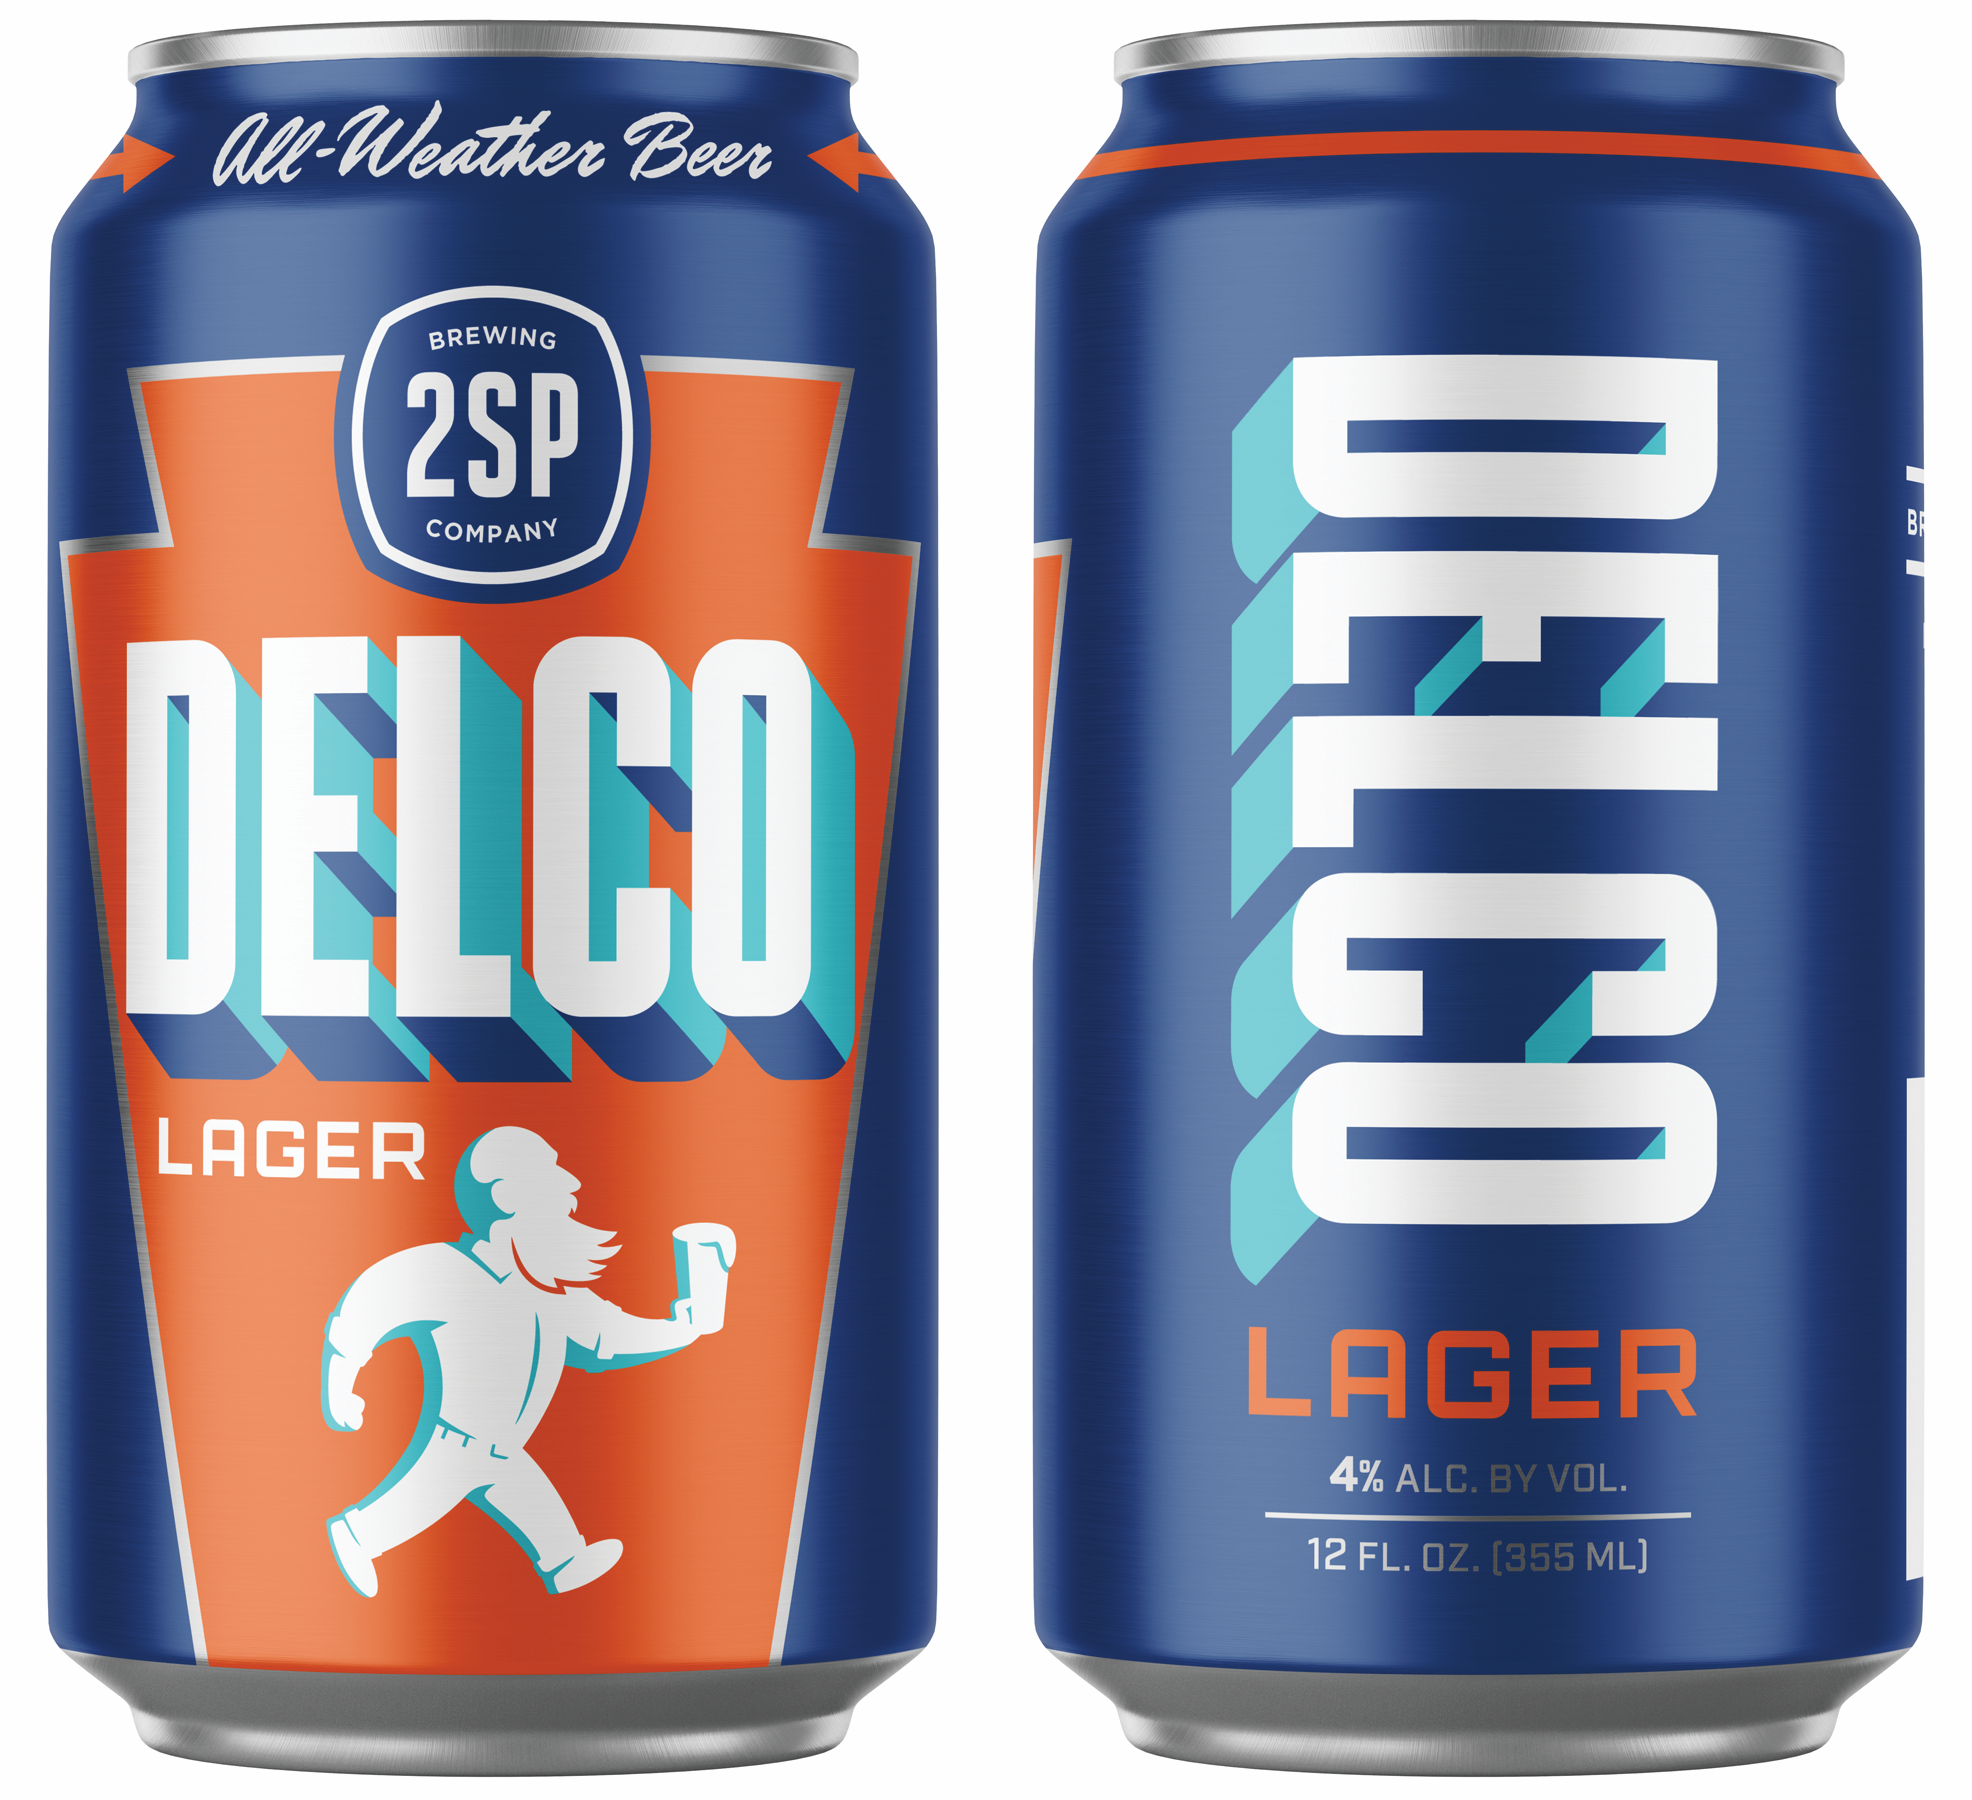 New Delco from 2SP Brewing Company 2021